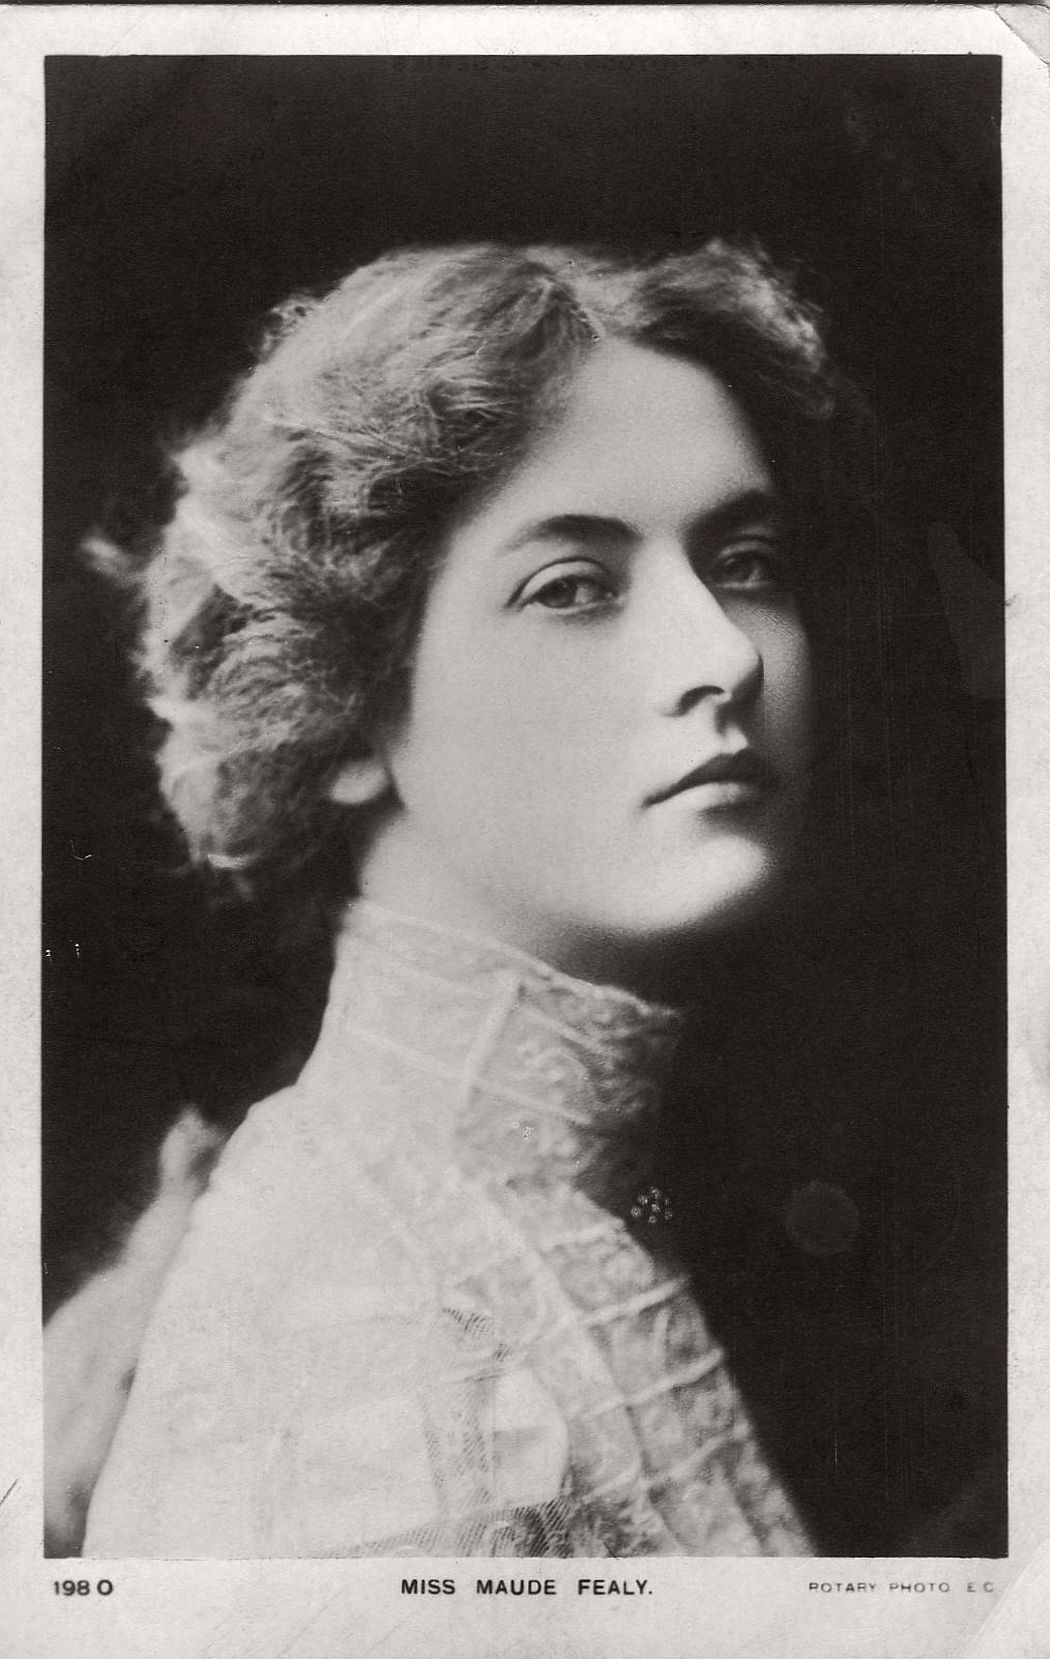 vintage-postcard-of-actress-miss-maude-fealy-1900s-early-xx-century-32